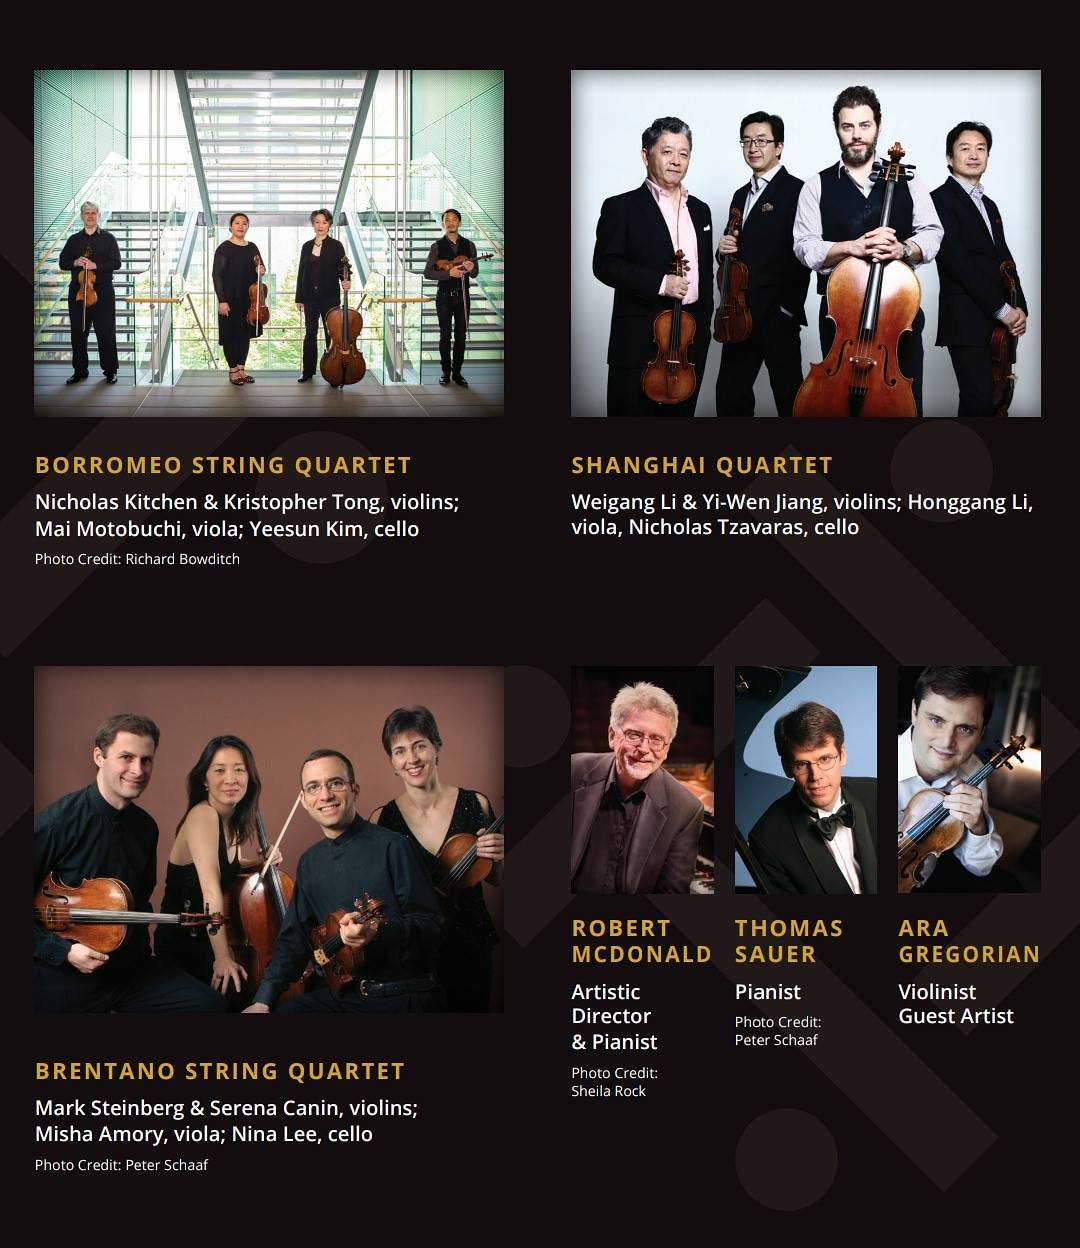 Flyer featuring Borromeo String Quartet, Shanghai Quartet, Brentano String Quartet, Robert MDonald, Thomas Sauer and Ara Gregorian and accompanying images of the performers